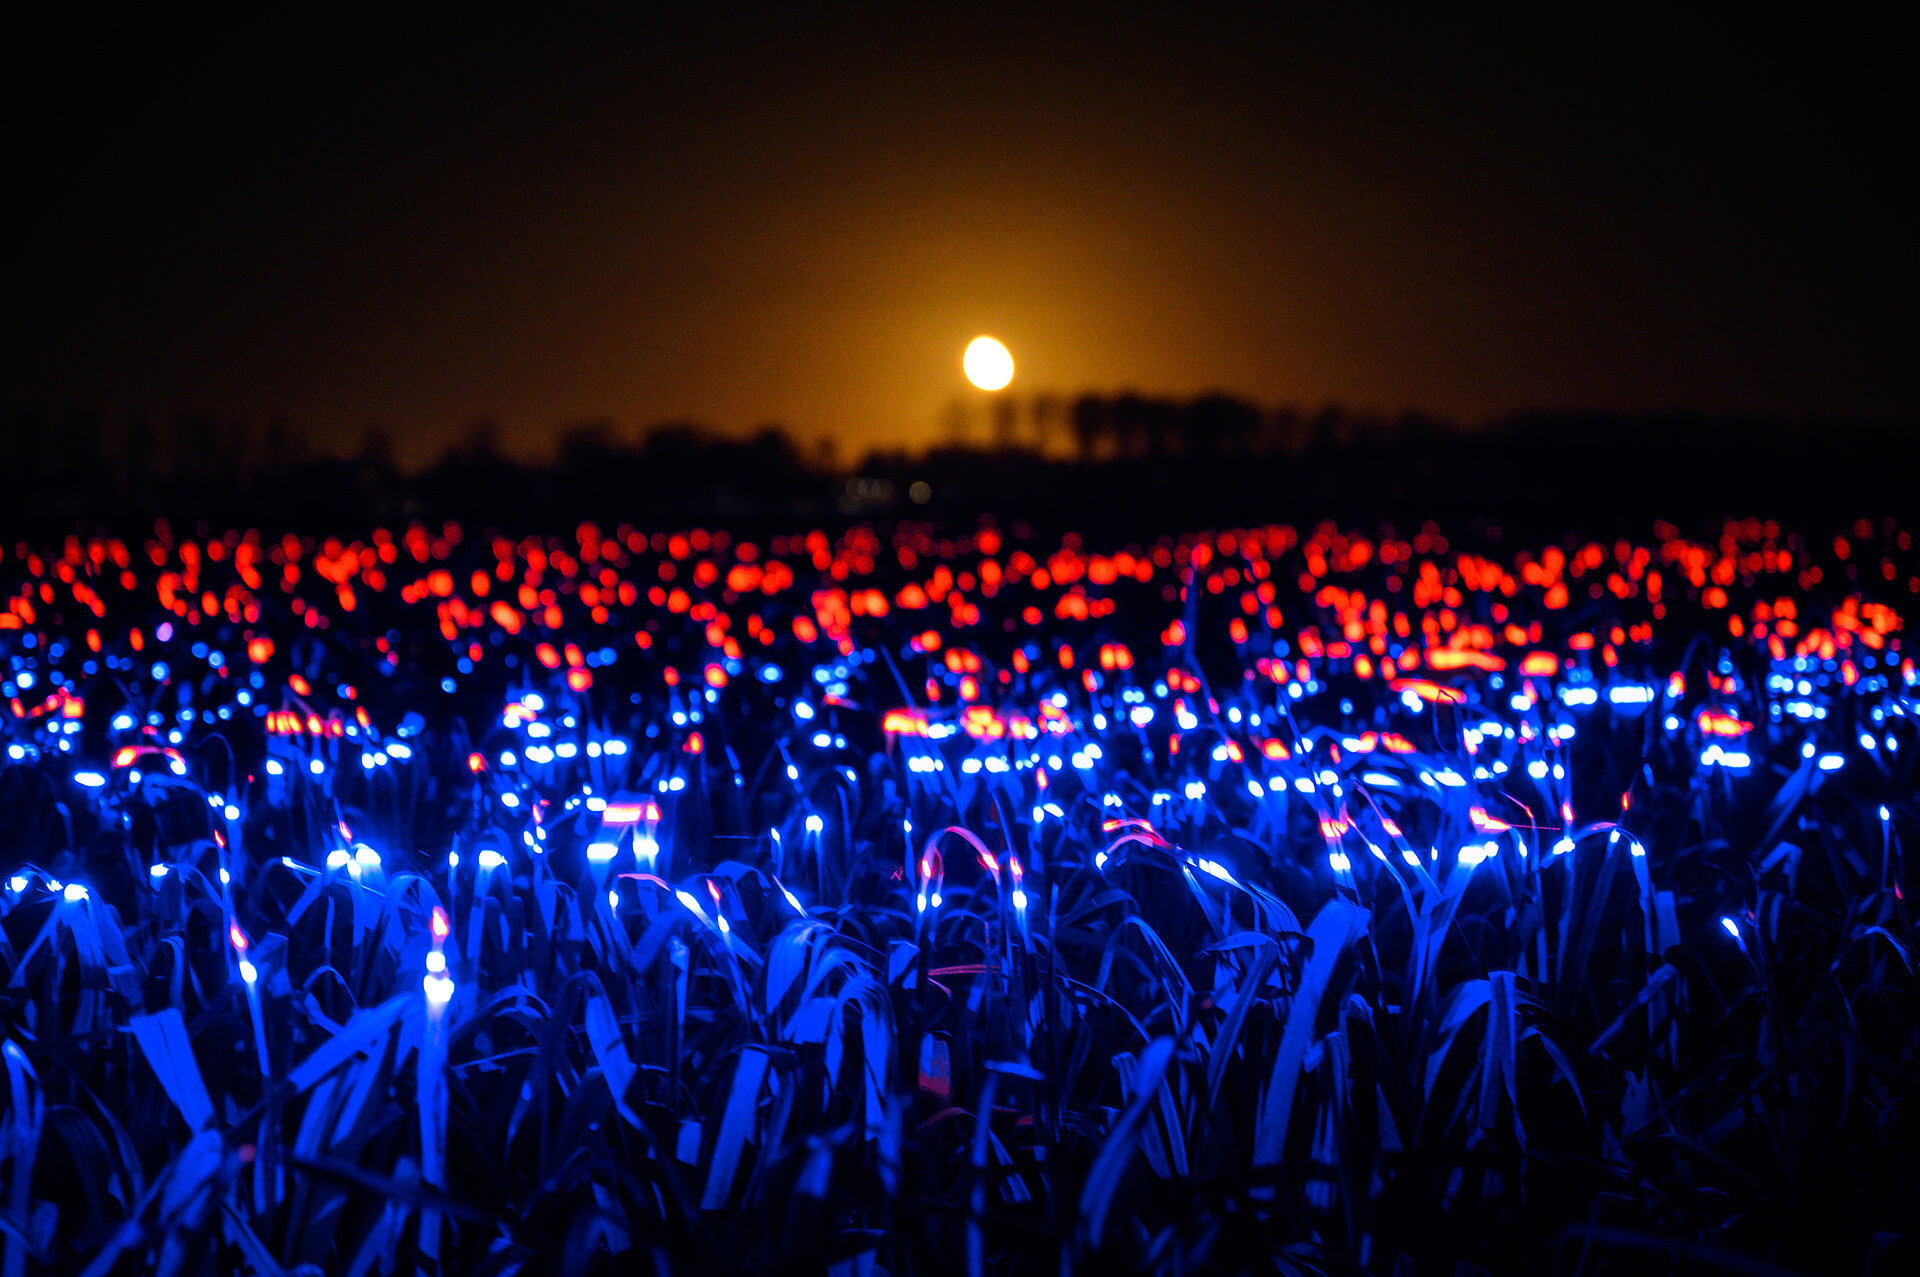 Grow also reveals itself as a hopeful and poetic luminous spectacle | Grow by Daan Roosegaarde | STIRworld